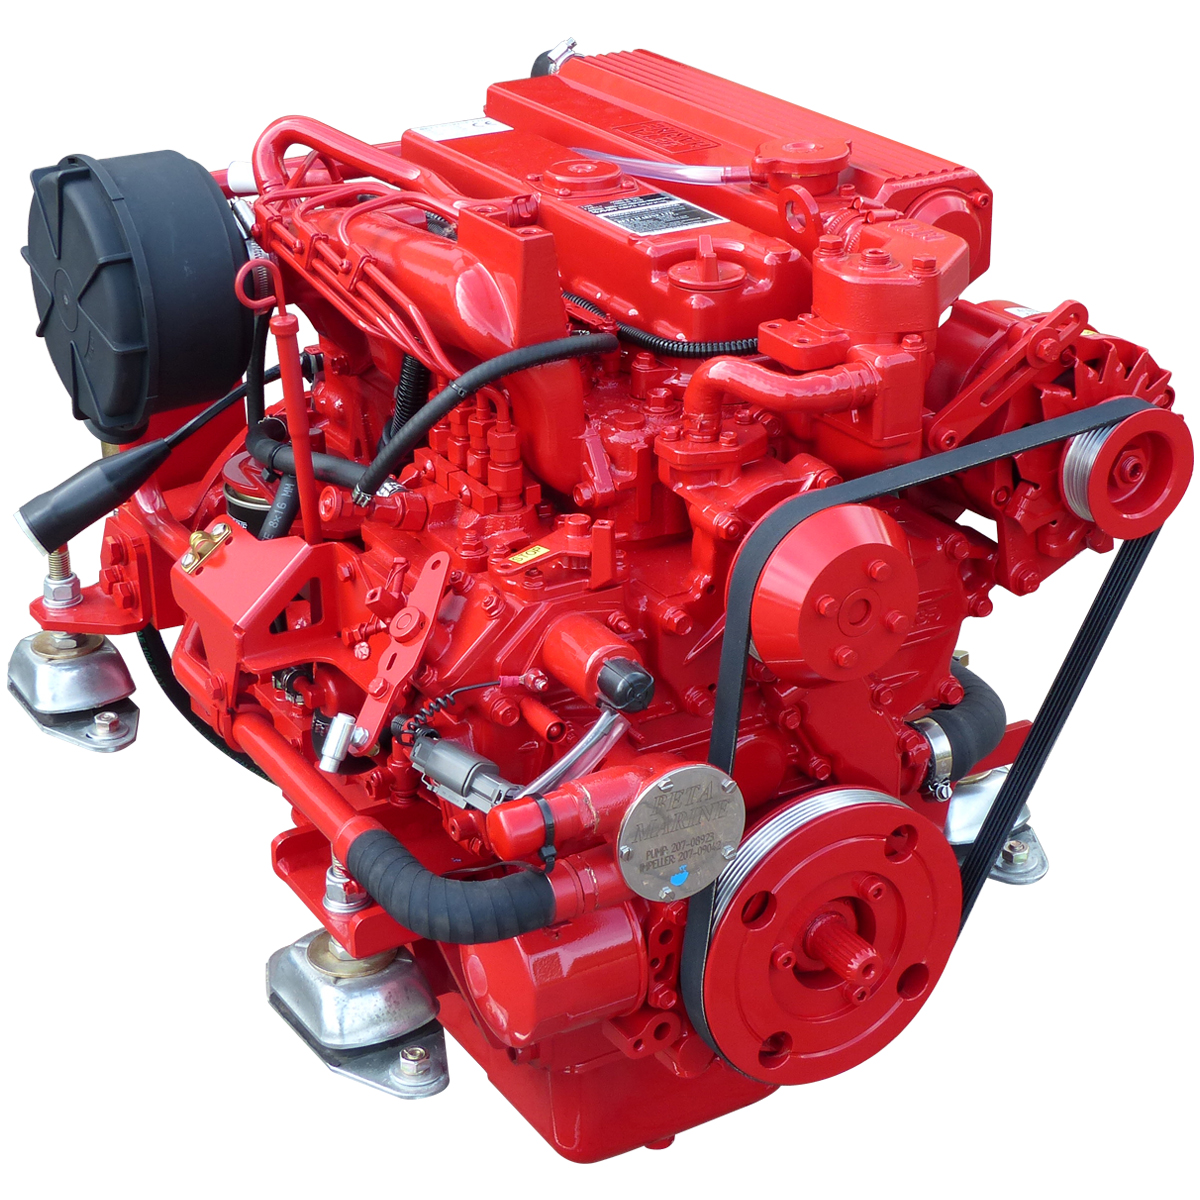 Beta Marine Seagoing Heat Exchanger Cooled Marine Propulsion Engines from 10 to 150 bhp